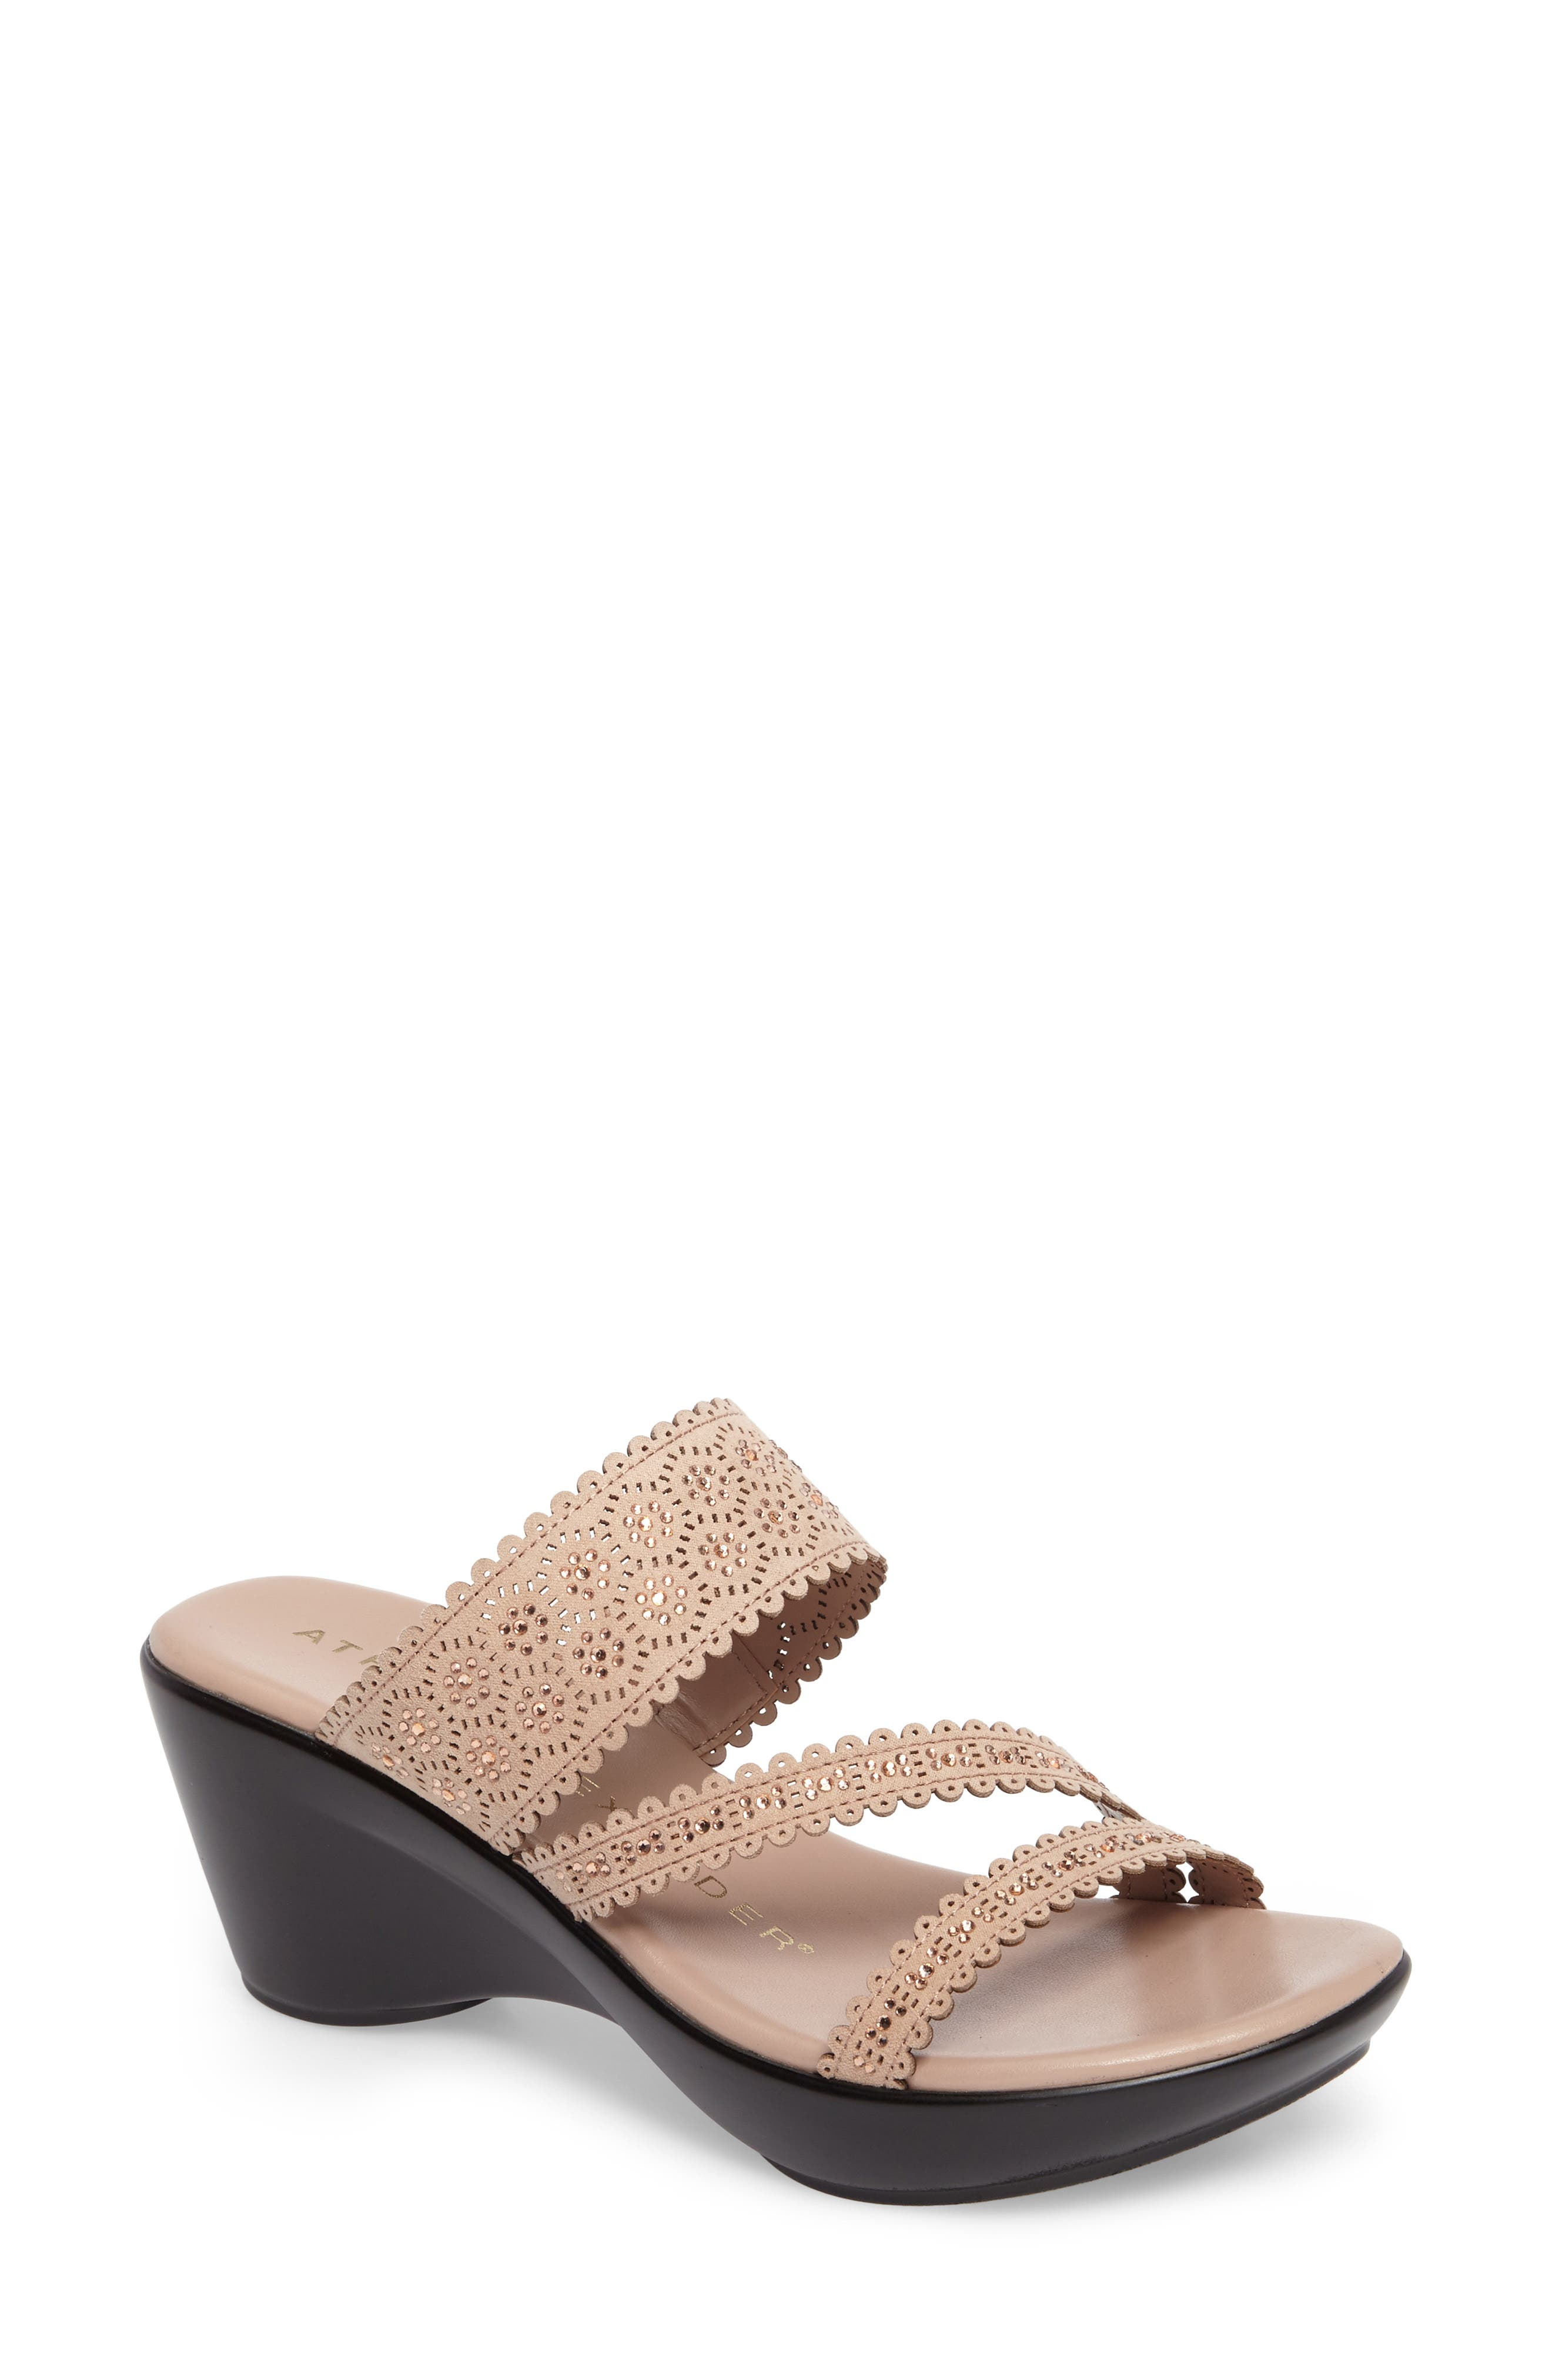 Poppy Wedge Sandal,                             Main thumbnail 1, color,                             BLUSH SYNTHETIC